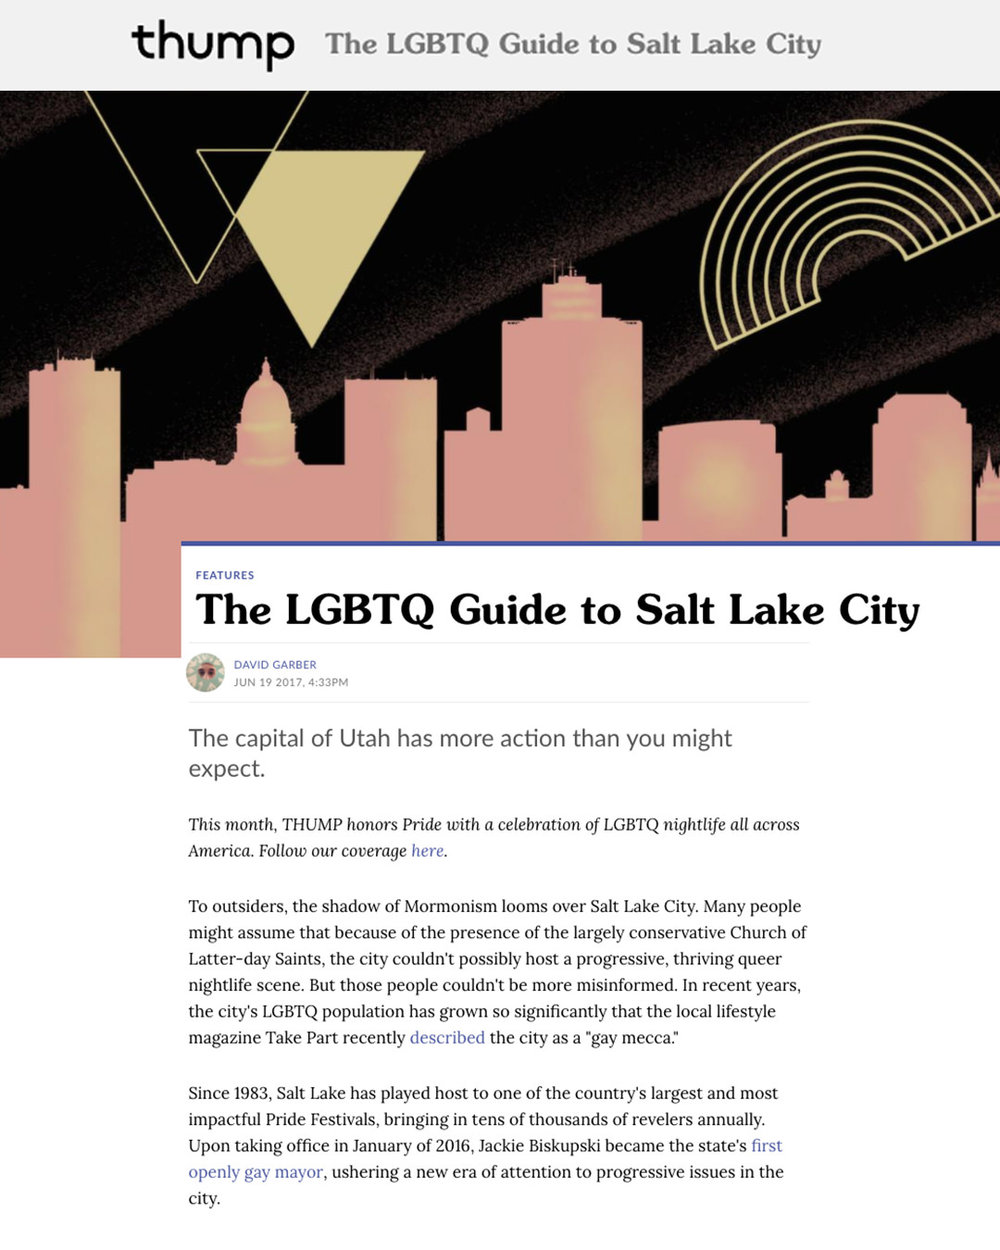 Vice-Thump-Magazine-LGBTQ-Guide-to-Salt-Lake-City-Utah-Crop.jpg